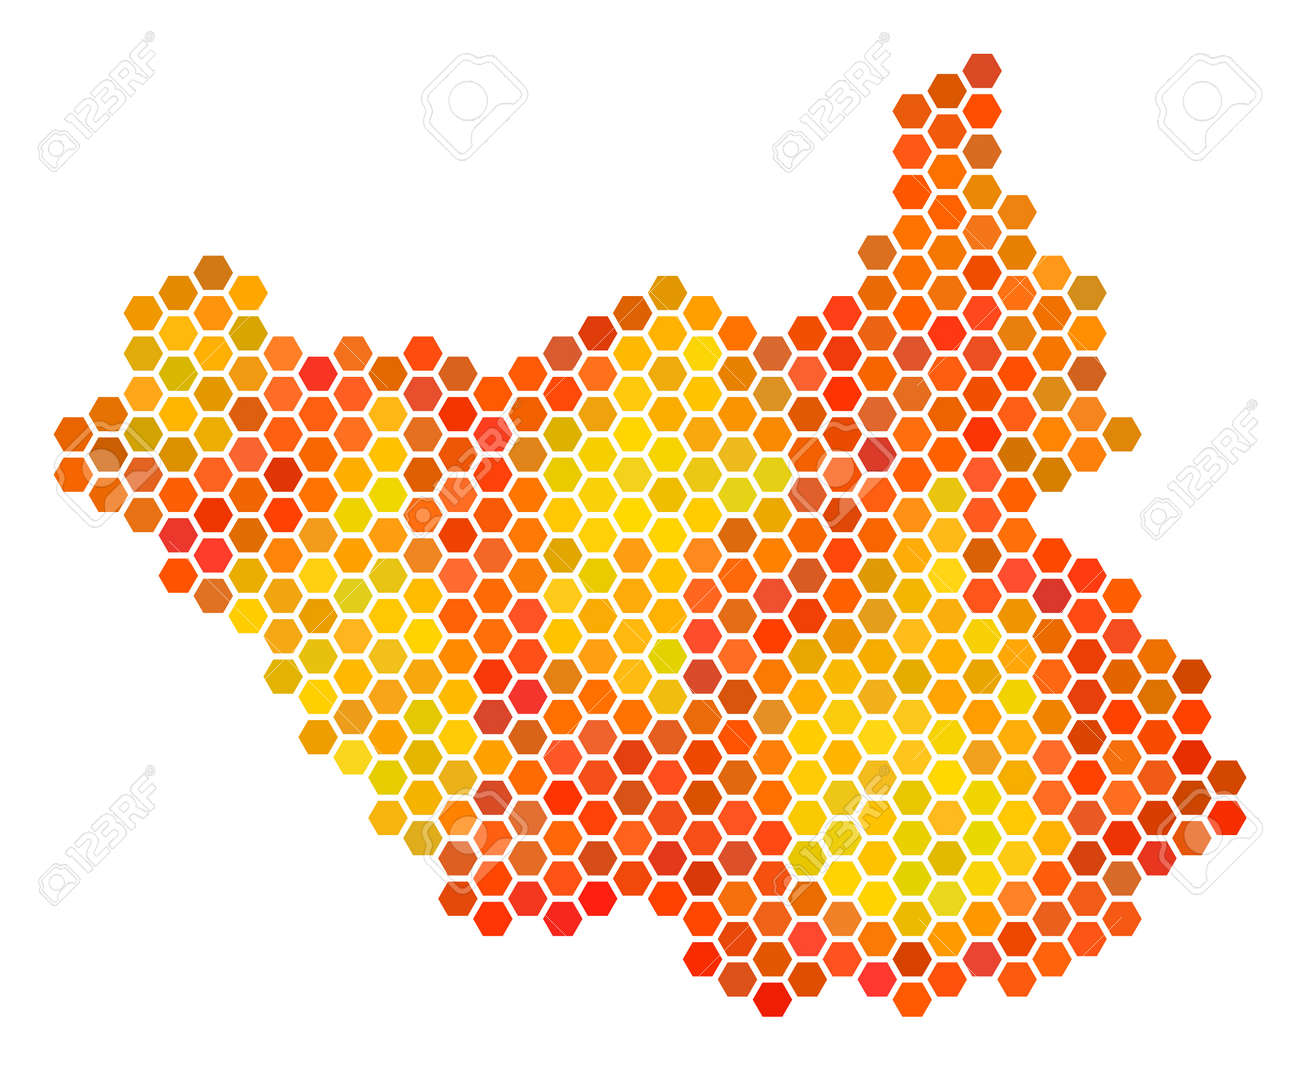 south sudan map vector hex tile territory map drawn with bright